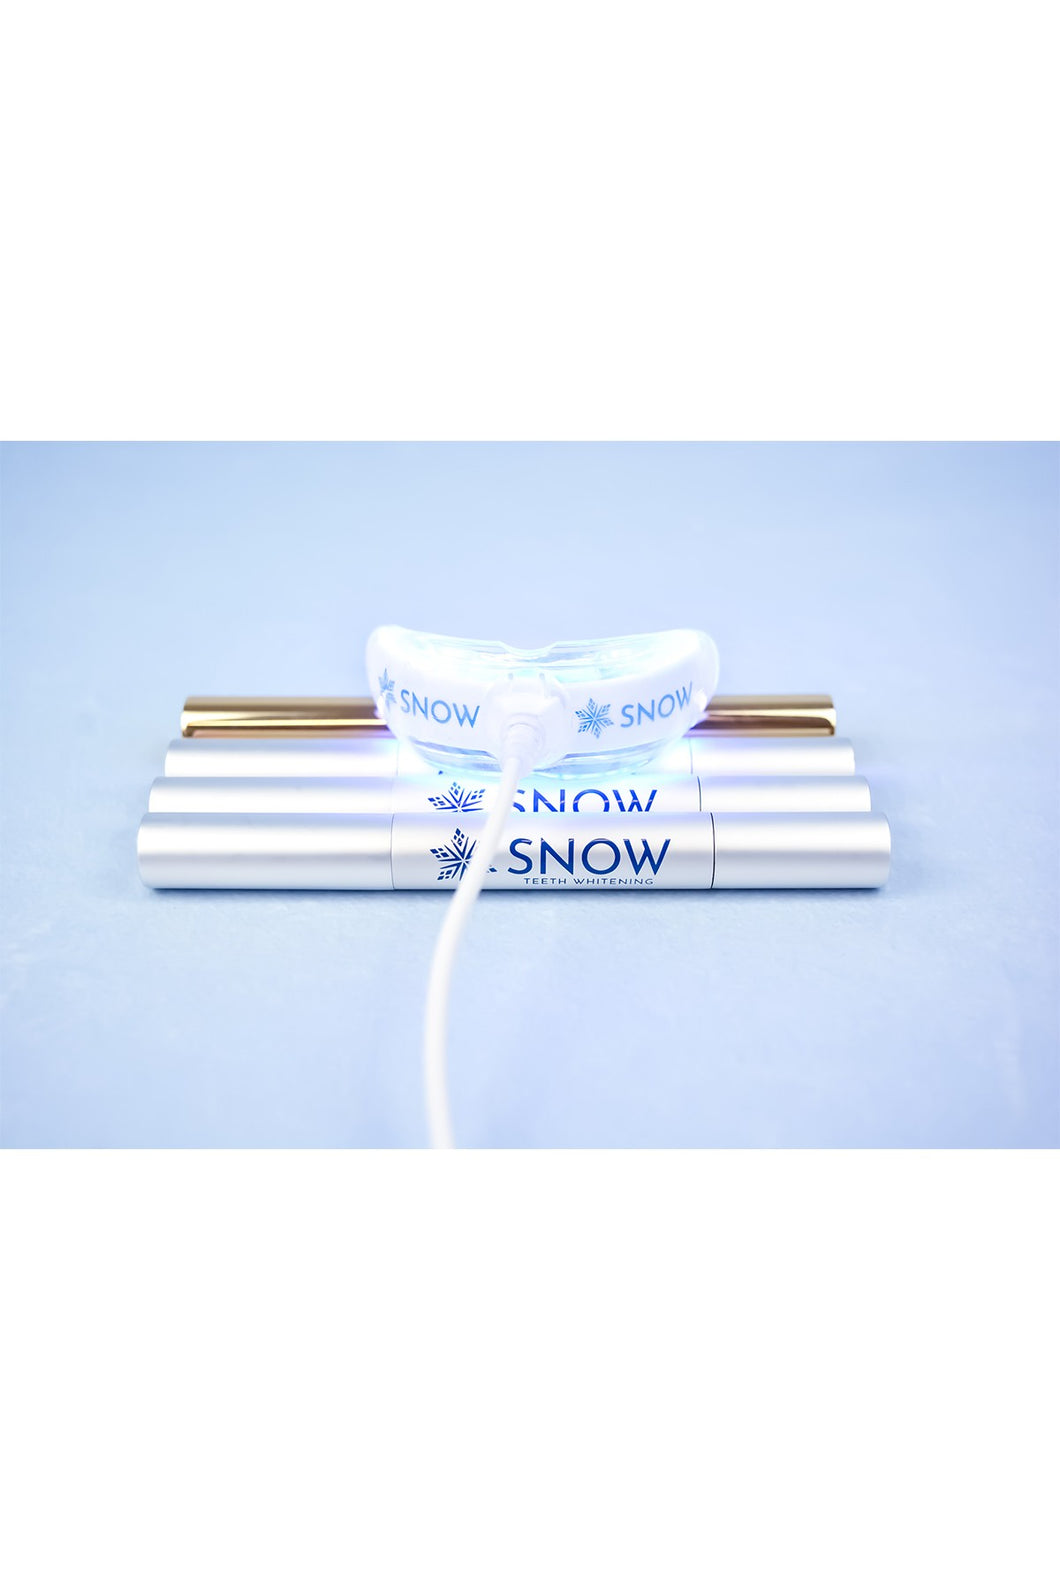 Snow Teeth Whitening - Offer Today